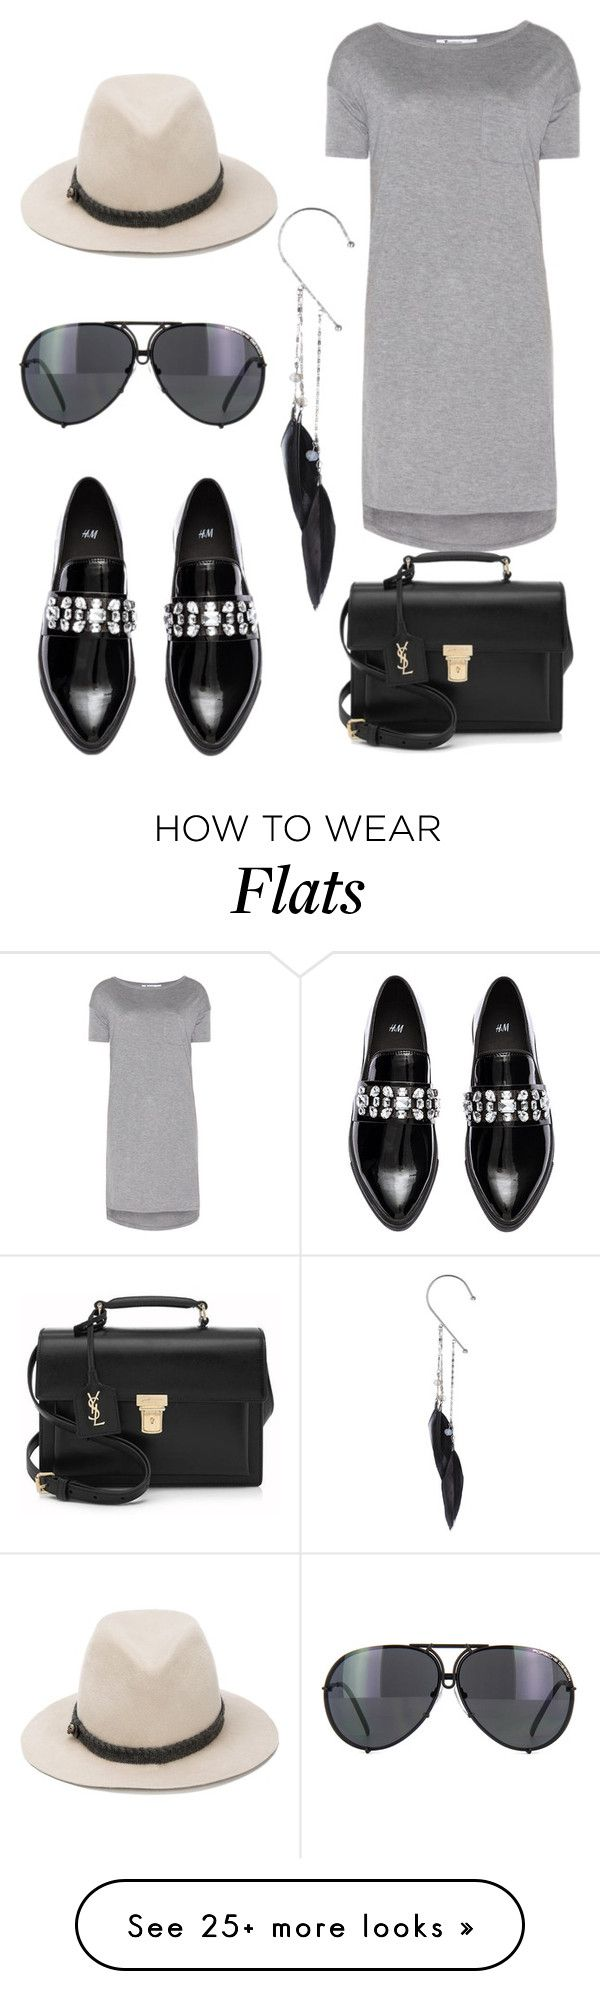 """""""Rock chic"""" by yalda-gilantash on Polyvore featuring moda, T By Alexander Wang, House of Lafayette, H&M, Yves Saint Laurent, Topshop e Porsche"""